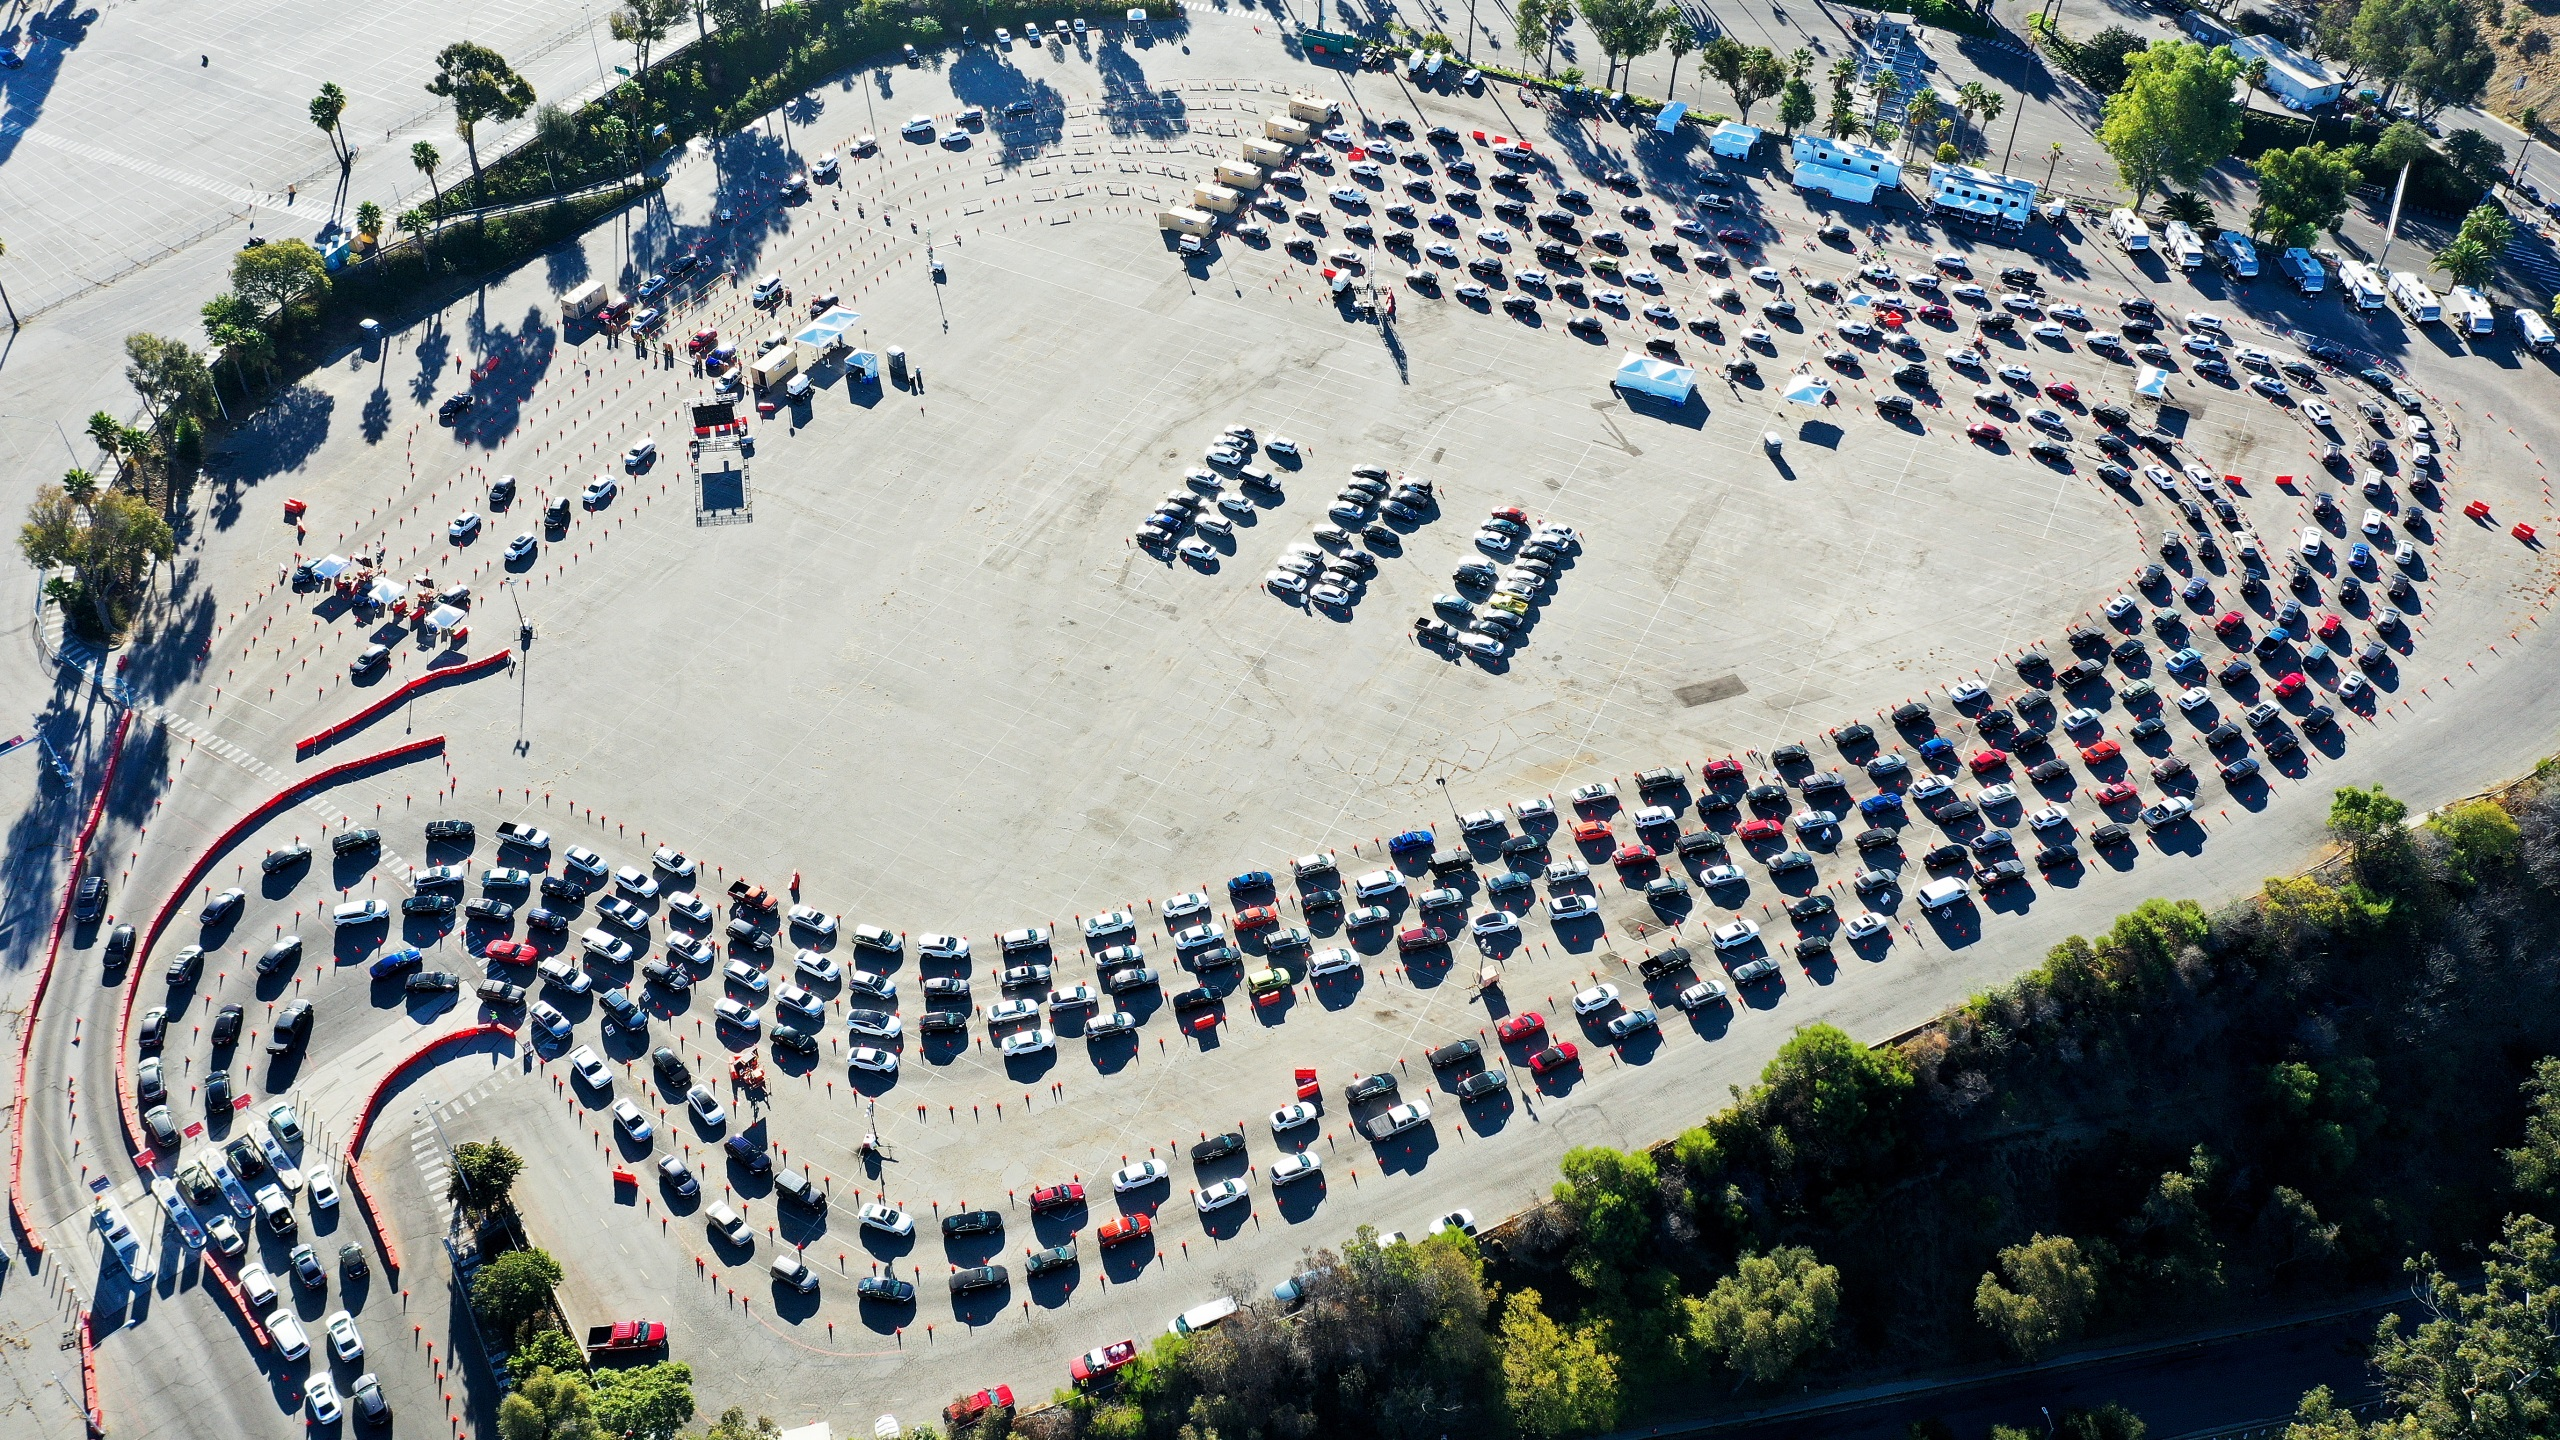 In an aerial view from a drone, cars are lined up at Dodger Stadium for COVID-19 testing on the Monday after Thanksgiving weekend on November 30, 2020 in Los Angeles. (Mario Tama/Getty Images)